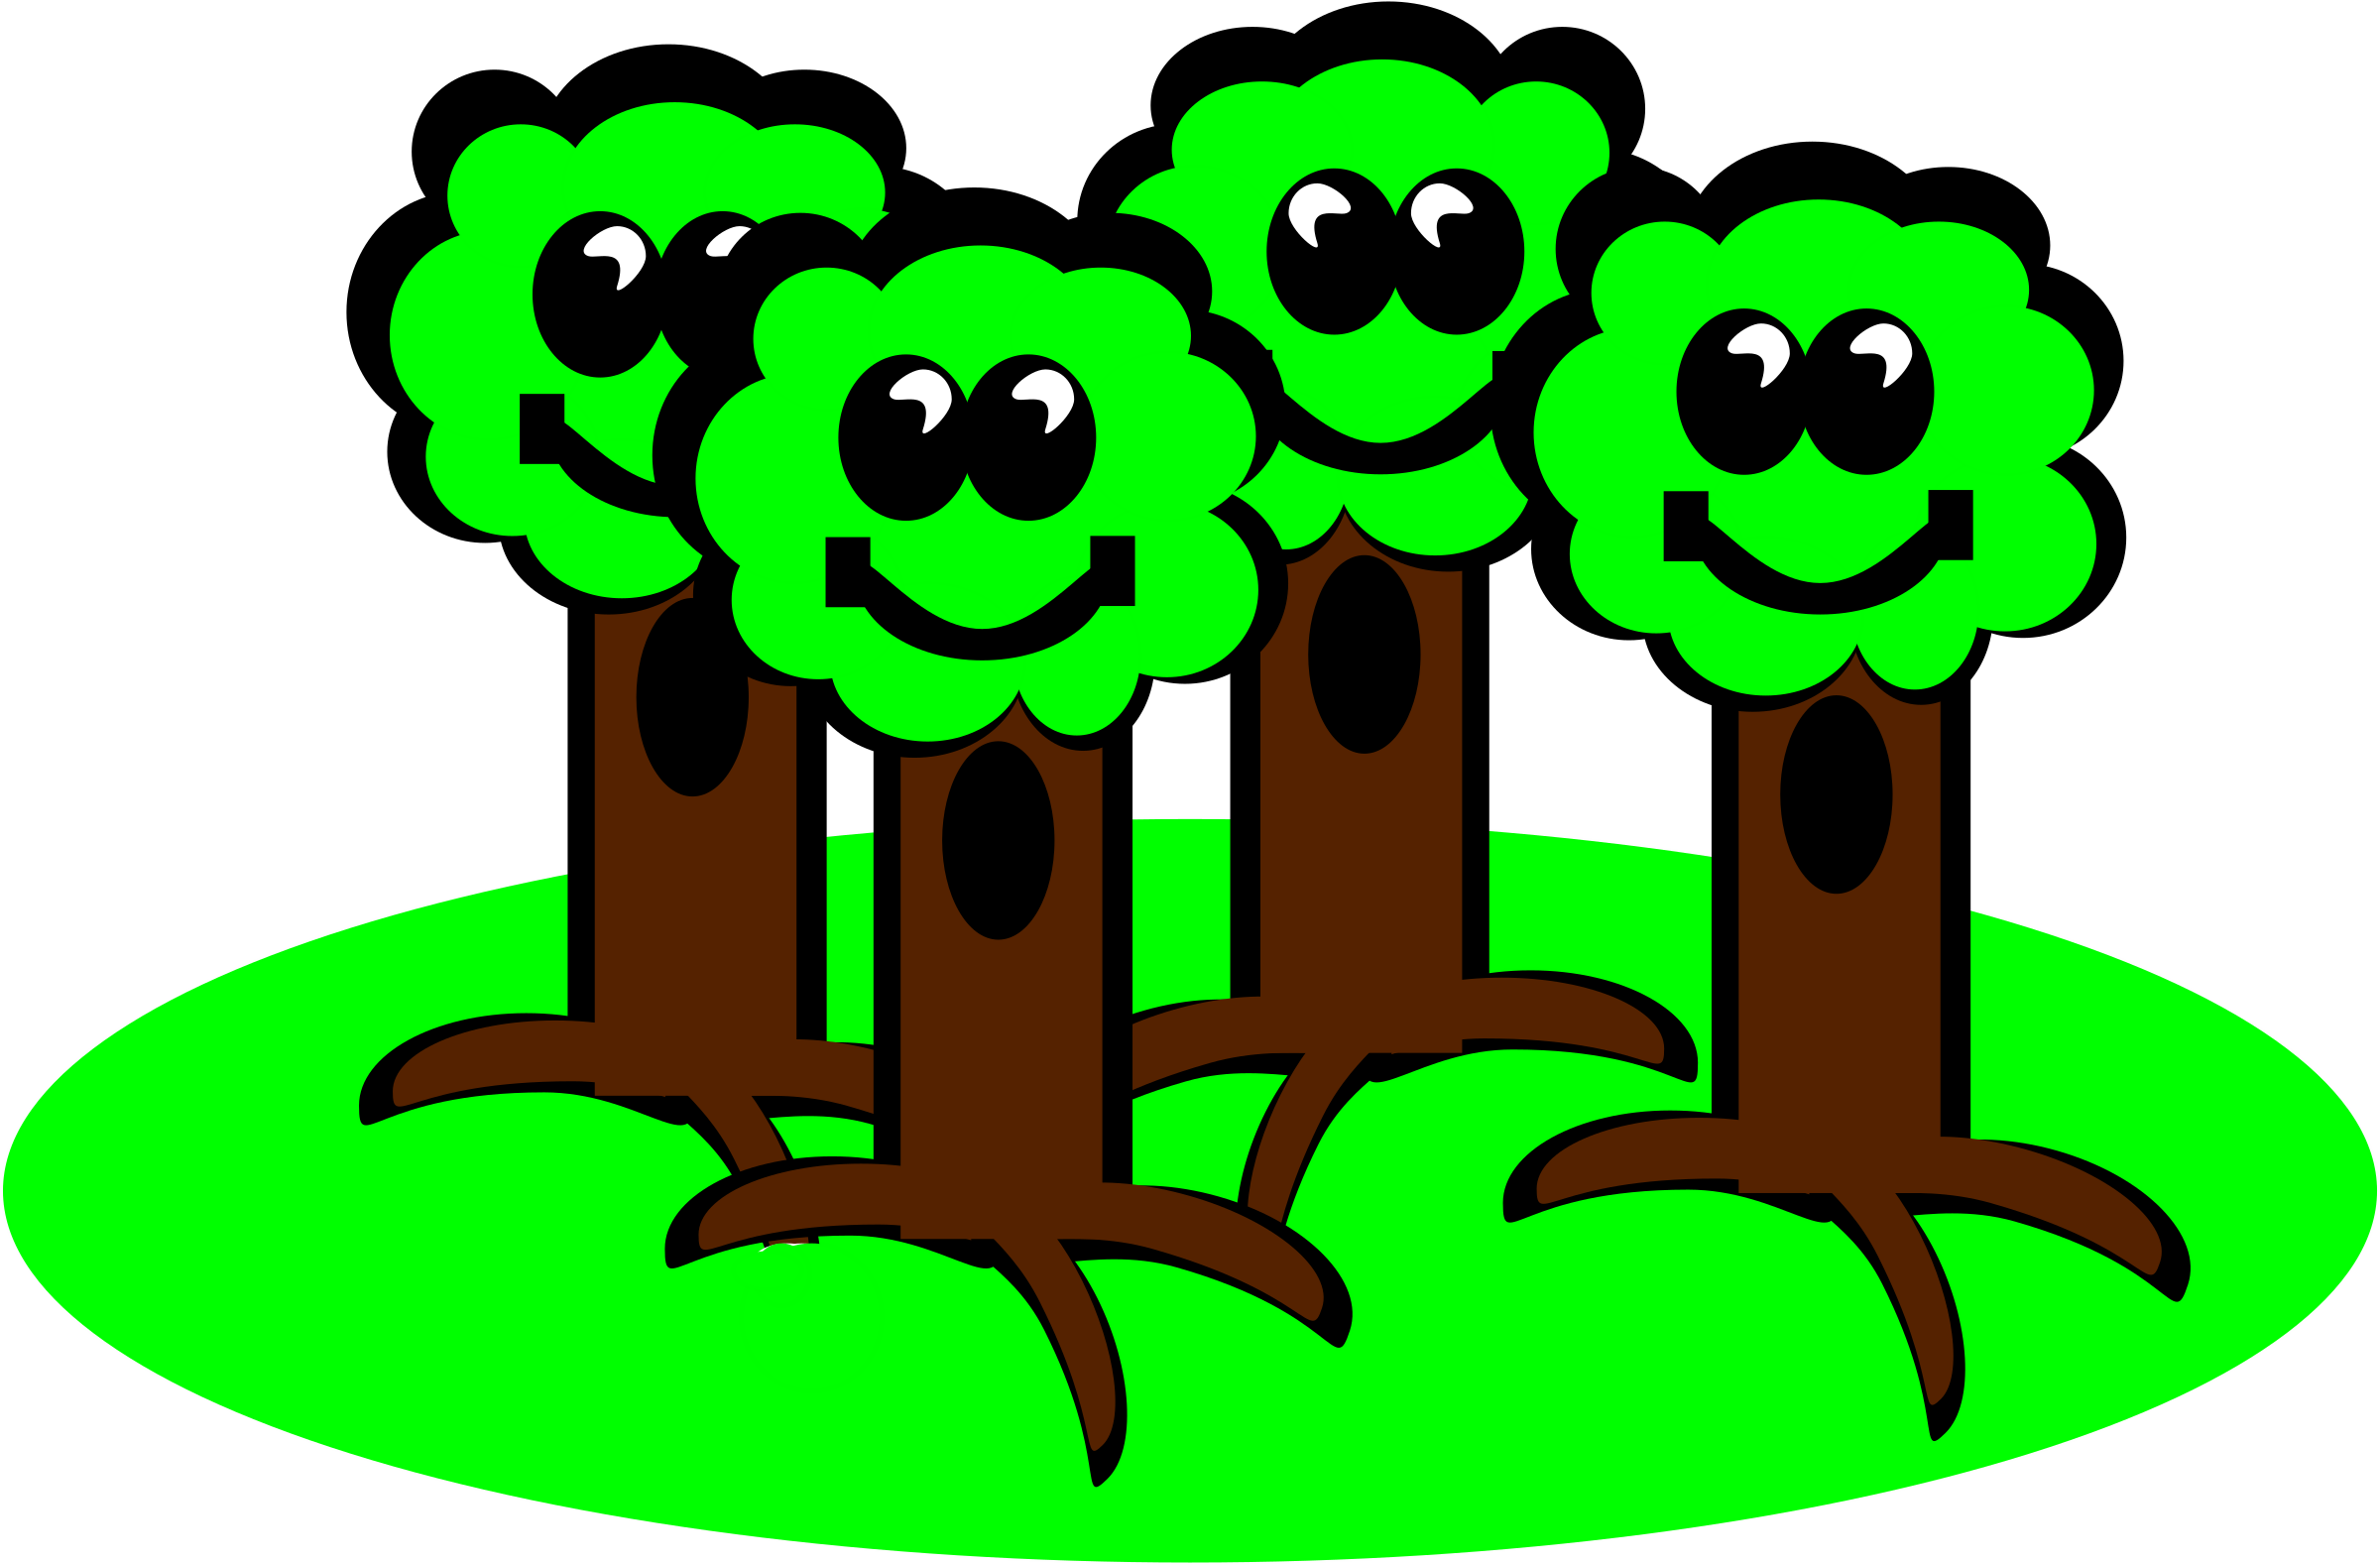 Brain tree clipart black and white library 28+ Collection of Happy Tree Clipart | High quality, free cliparts ... black and white library